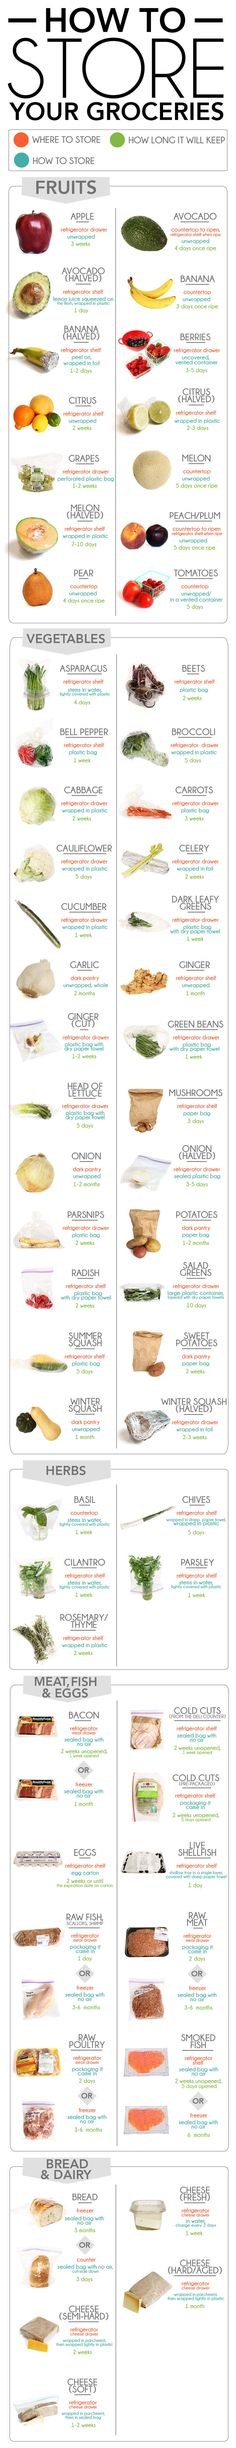 This Is Exactly How To Store Your Groceries